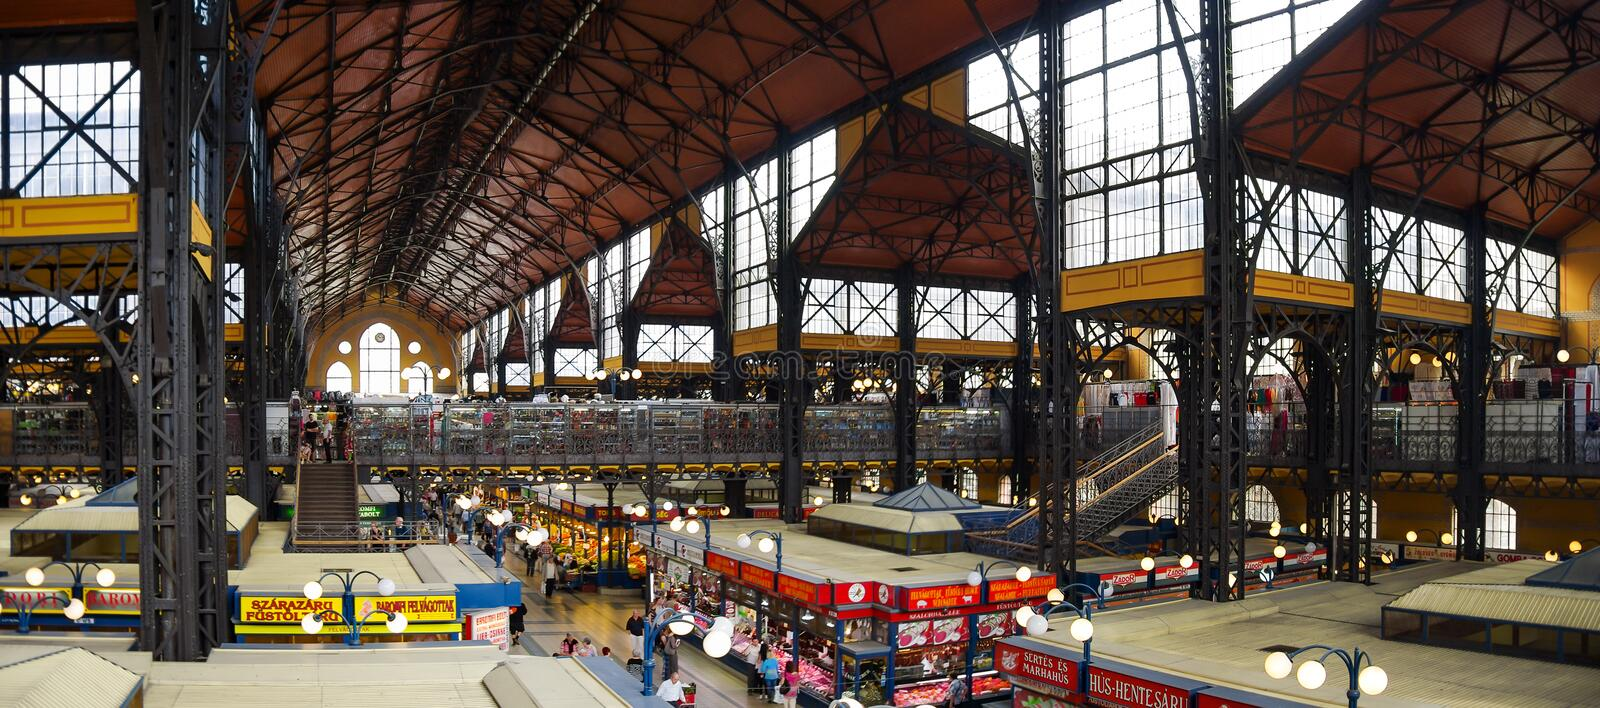 Inside the Central Market of Budapest, a major tourist attraction royalty free stock image